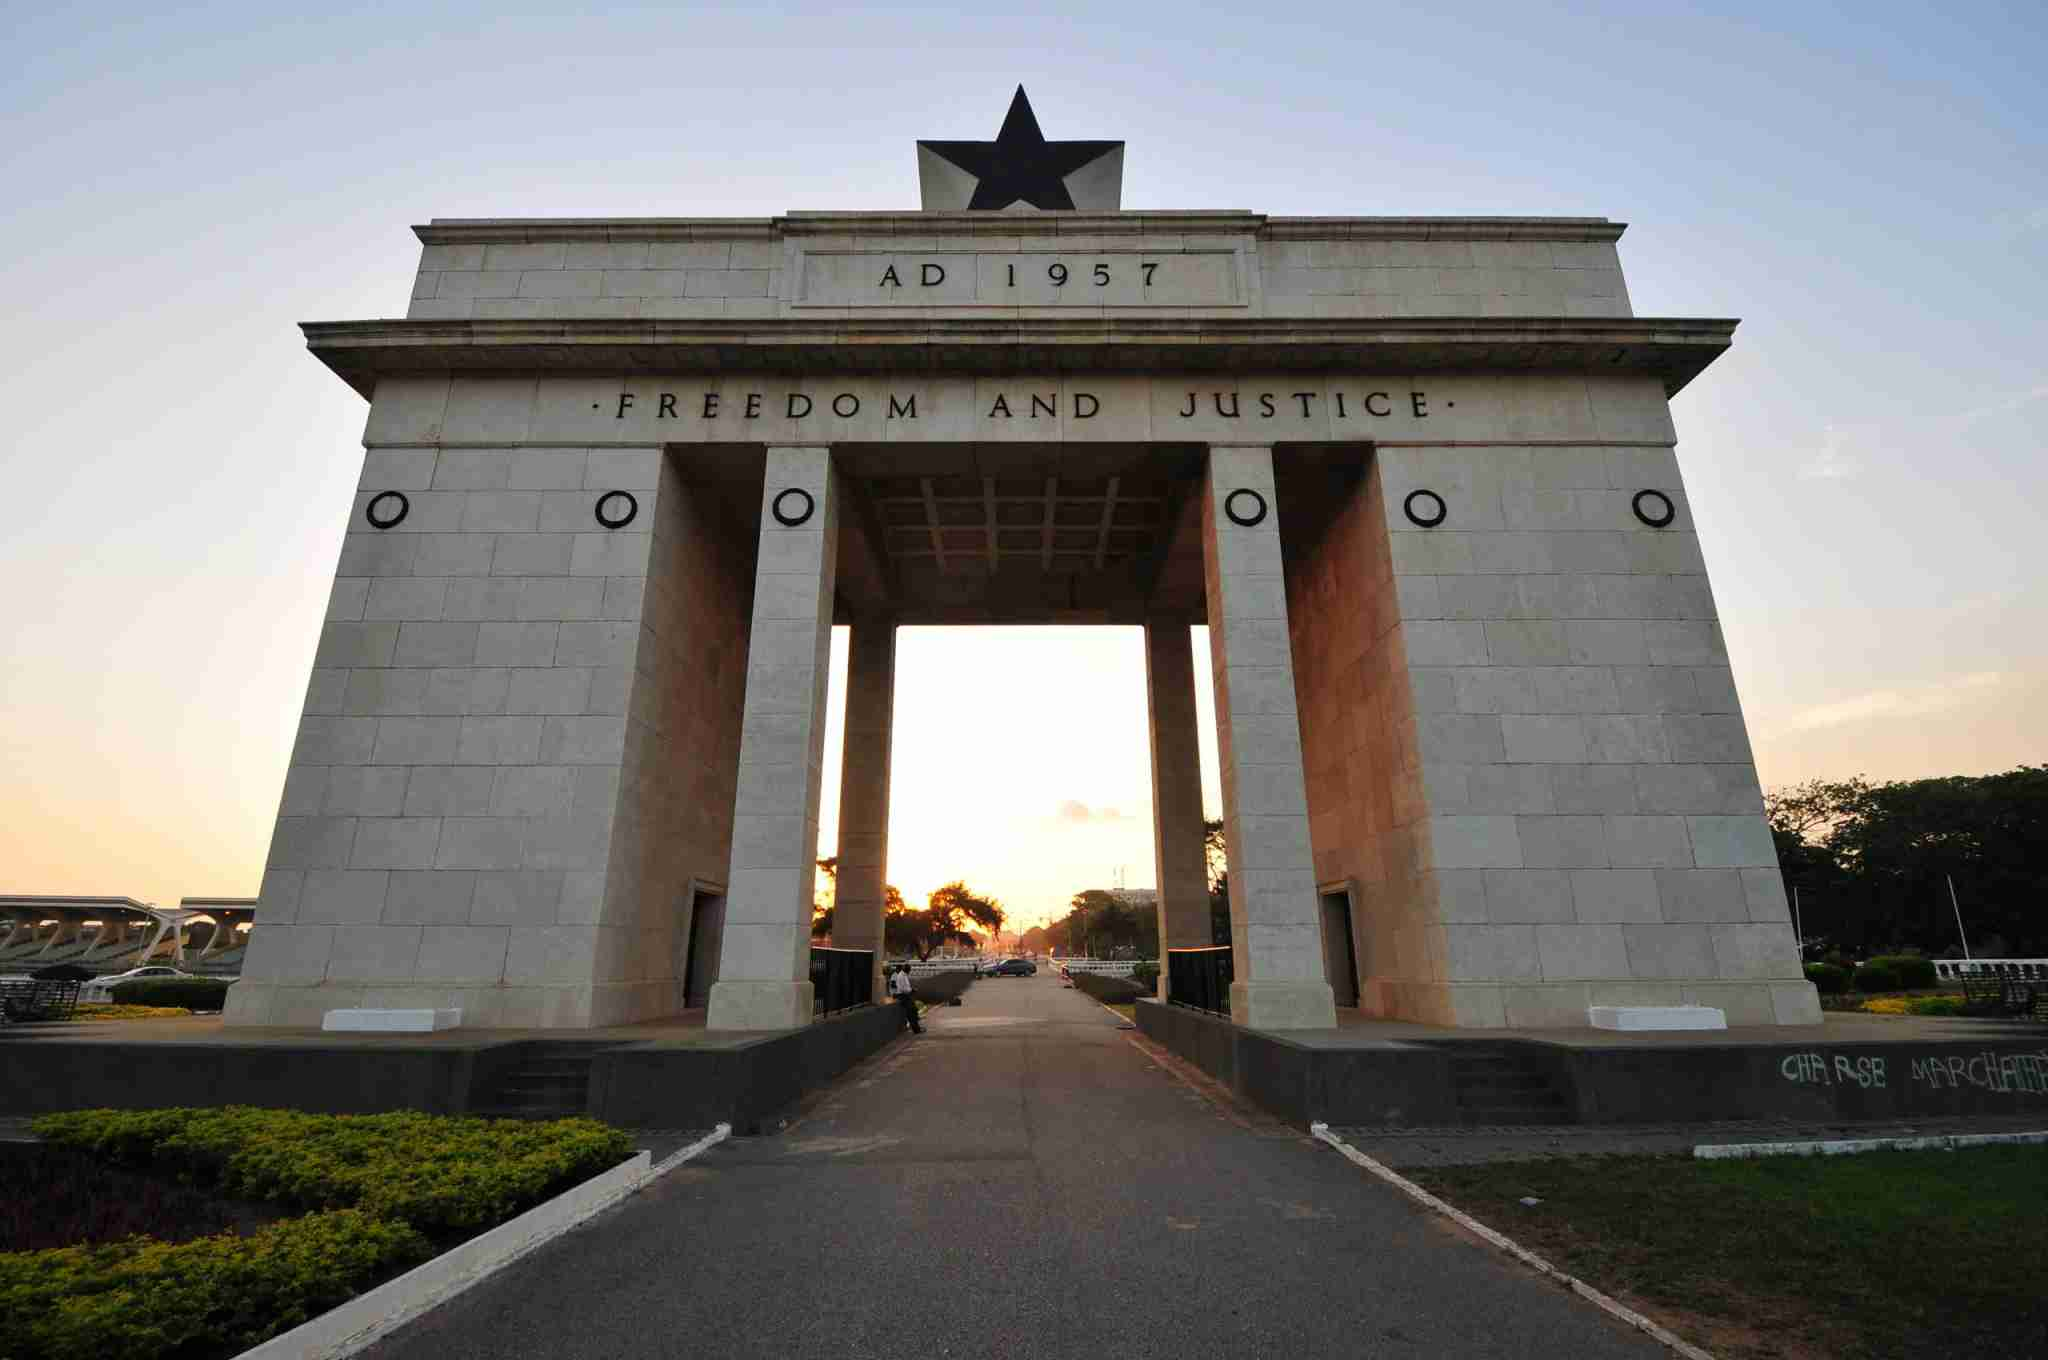 "The Independence Square of Accra, Ghana, inscribed with the words ""Freedom and Justice, AD 1957"", commemorates the independence of Ghana, a first for Sub Saharan Africa. It contains monuments to Ghana"